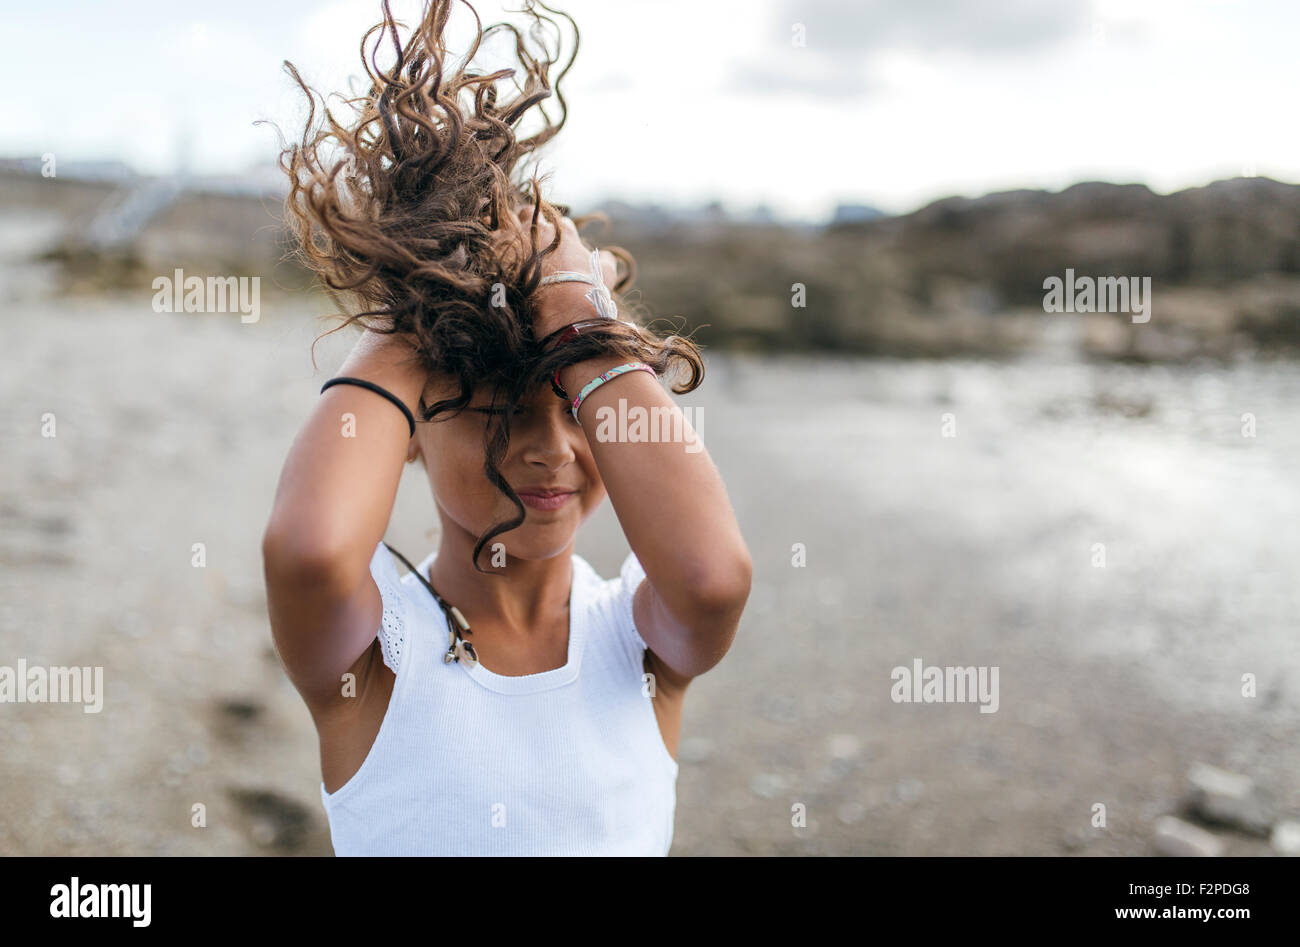 Spain, Gijon, little girl on the beach holding her blowing hair - Stock Image